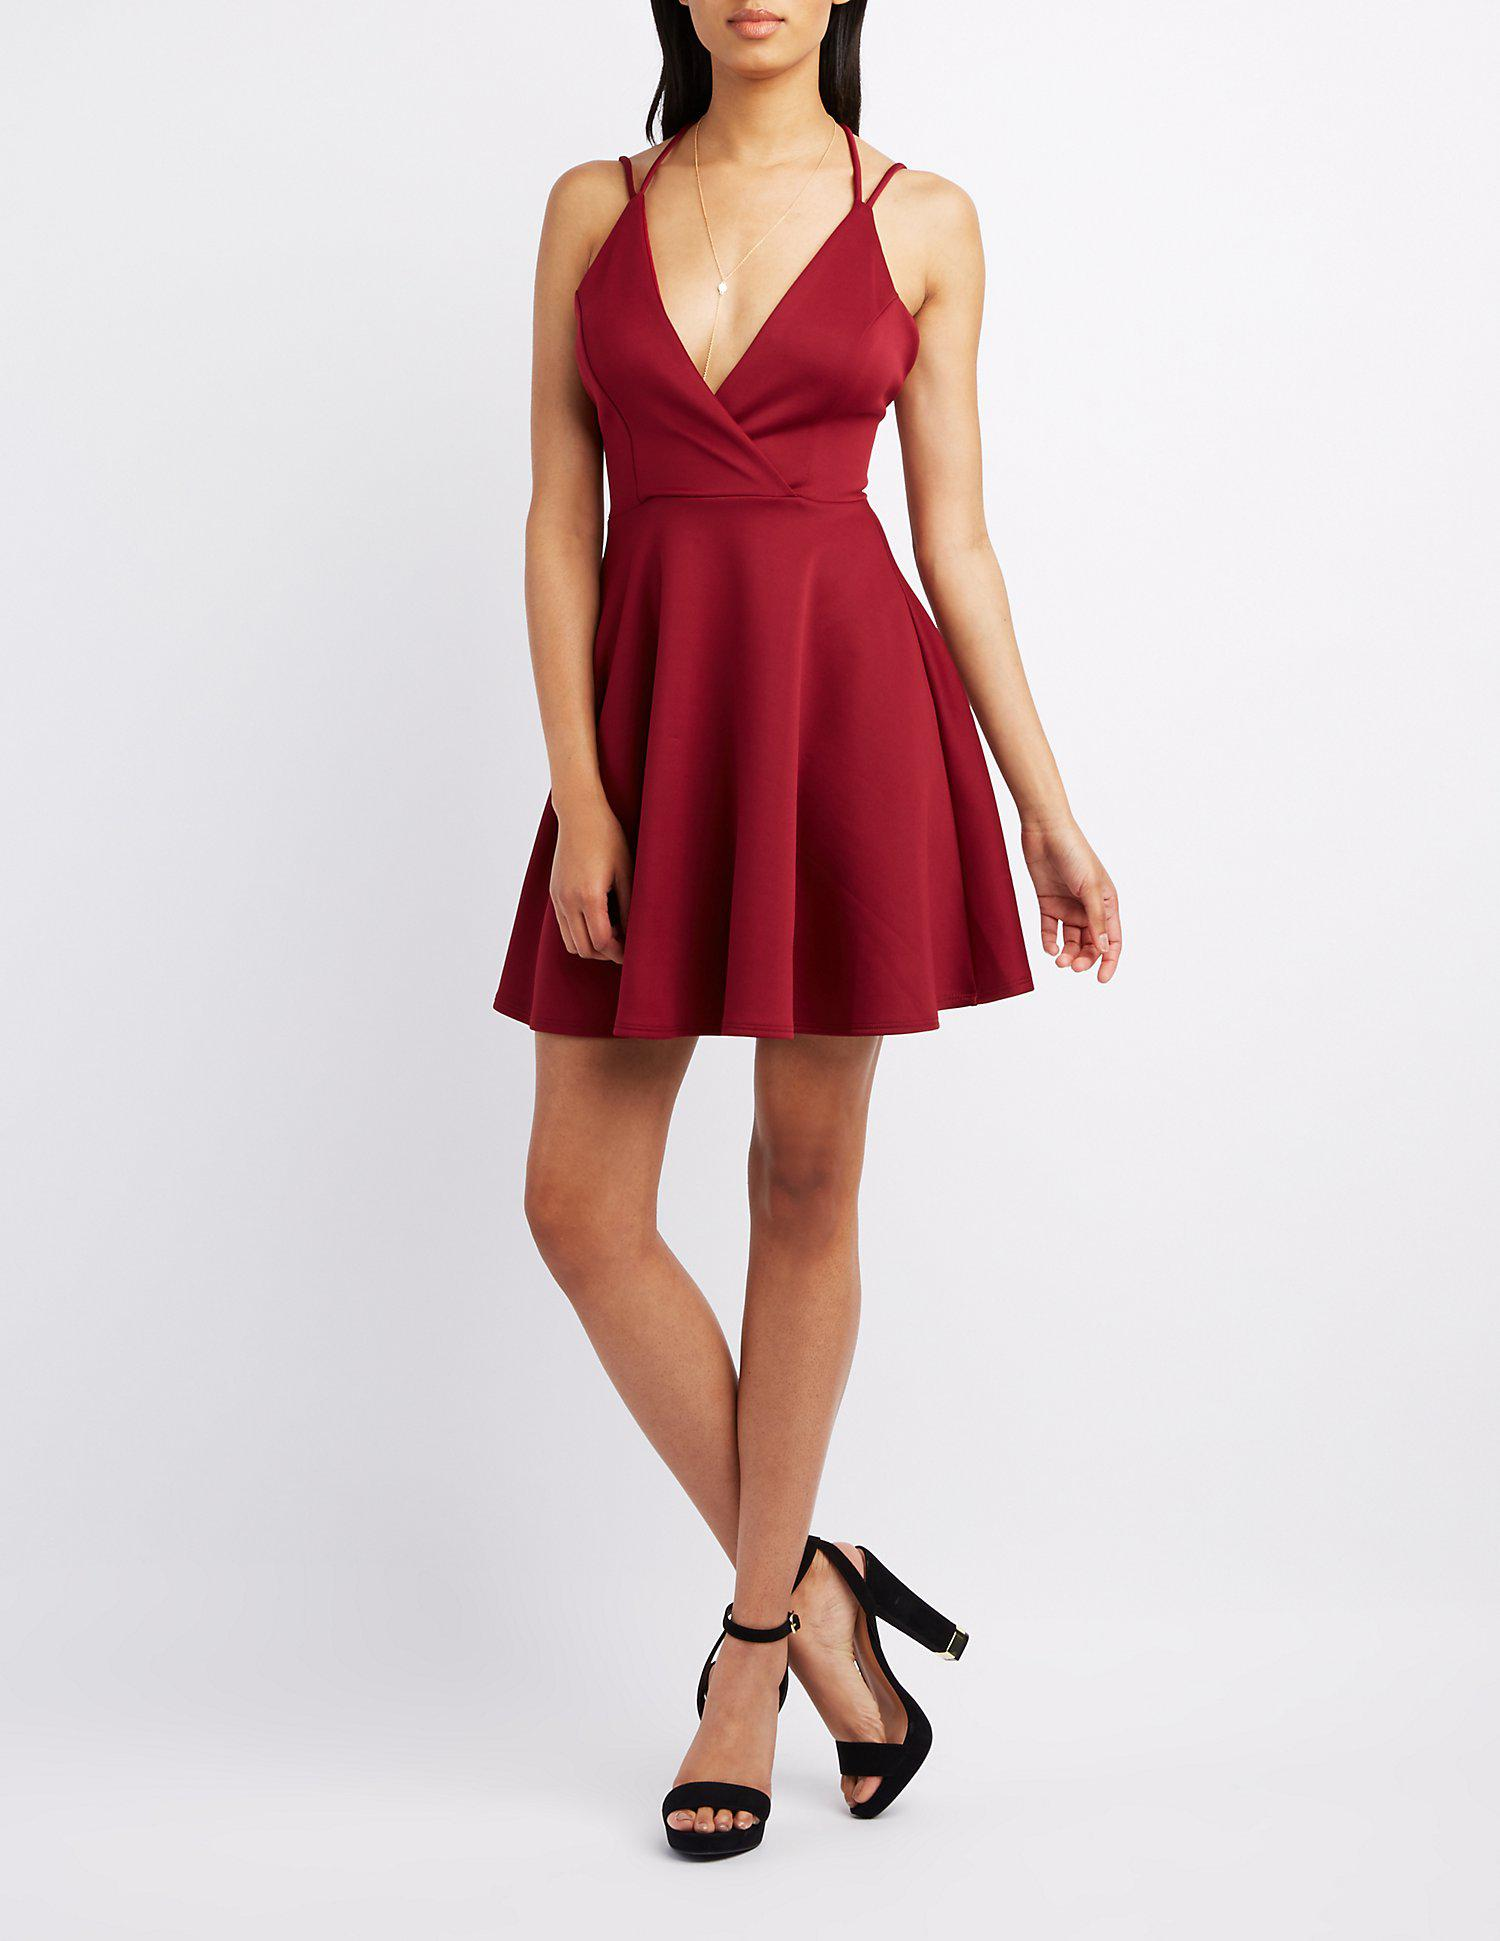 dafd2d36aa Gallery. Previously sold at  Charlotte Russe · Women s Skater Dresses